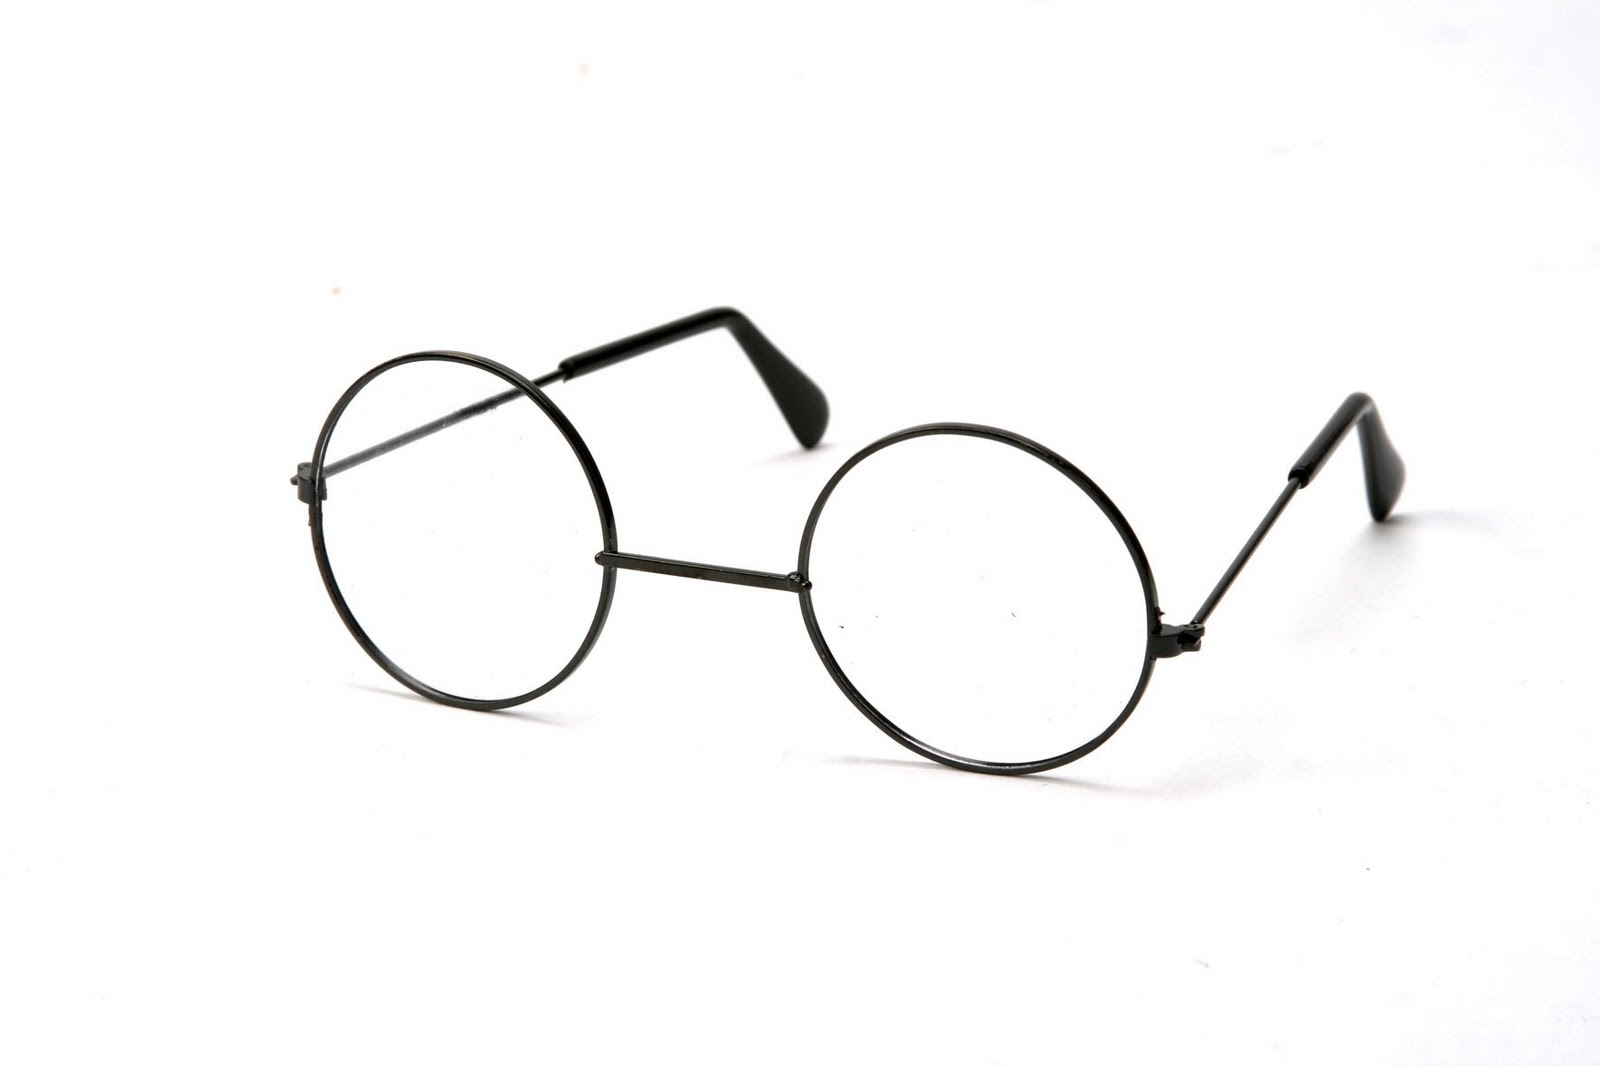 Free round glasses cliparts. Eyeglasses clipart circular glass